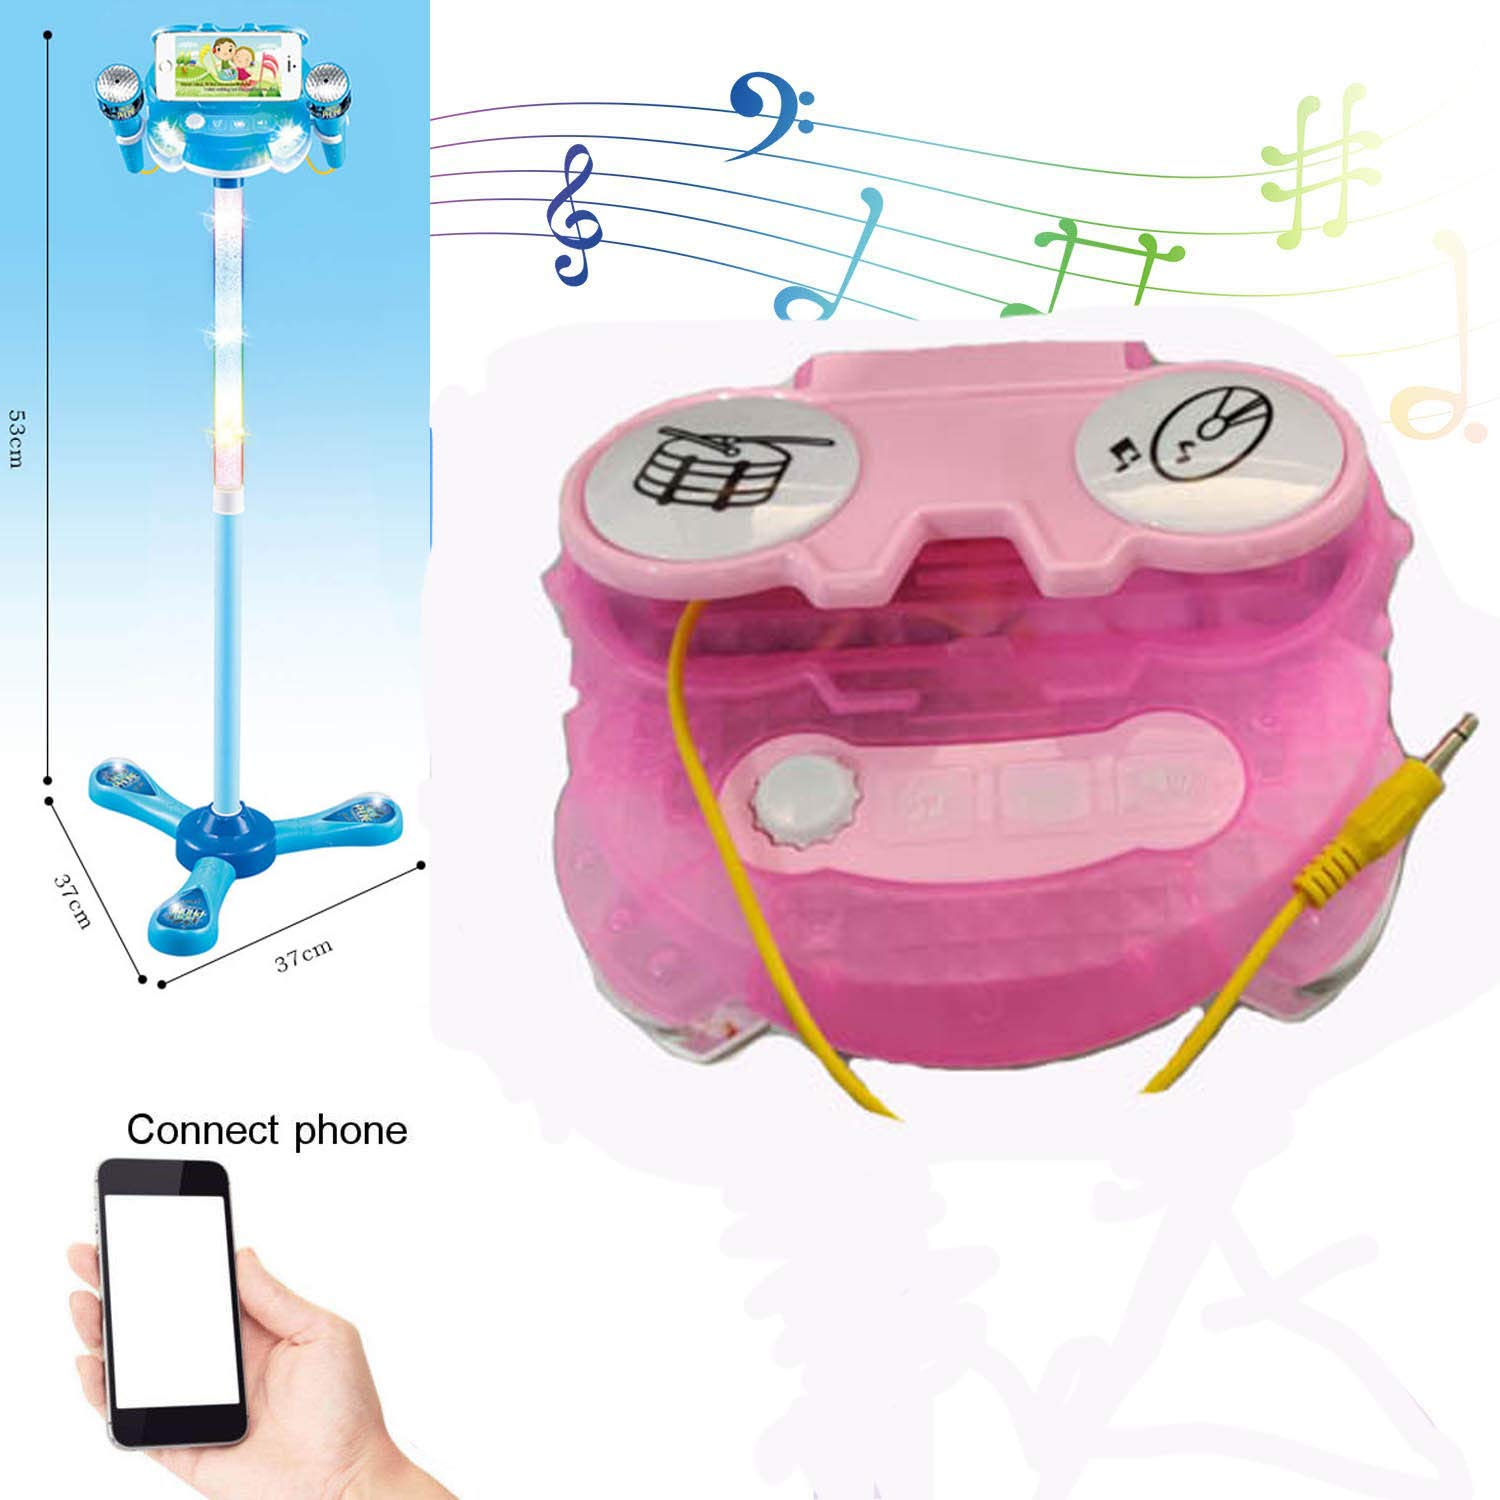 Elrido Kids Karaoke Machine with 2 Microphones and Adjustable Stand, Karaoke Machine Compatible with Cell Phone/MP3,Music Sing Along with Touch Button for Fun Musical Effects (Pink) by Elrido (Image #5)